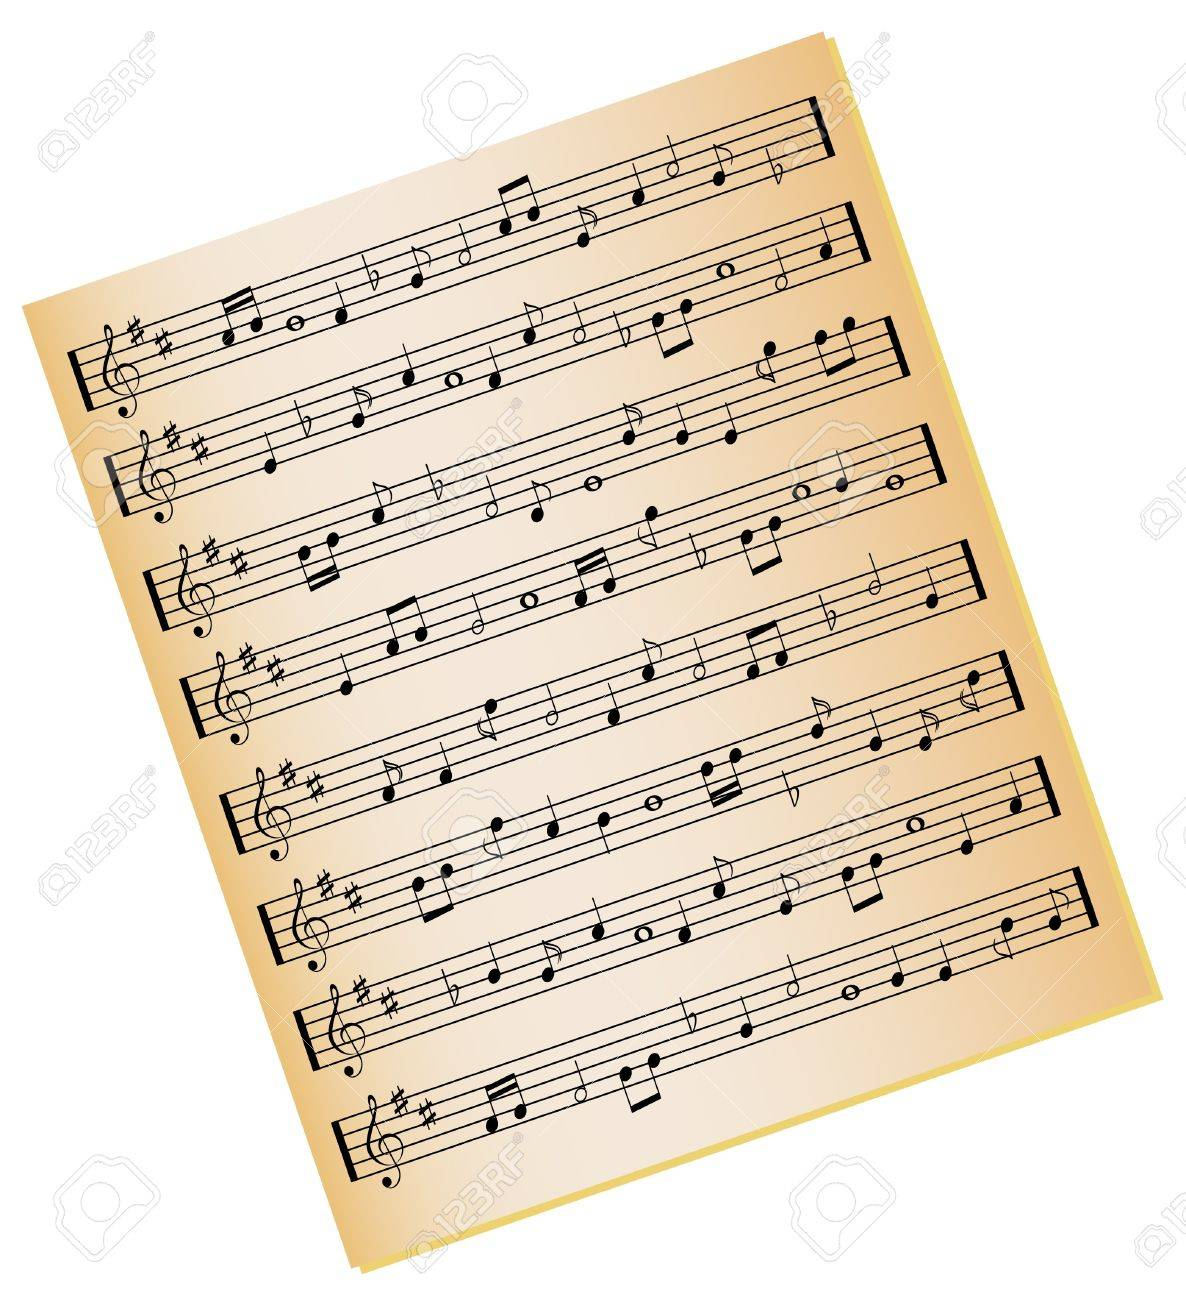 Sheet music on gold color paper Stock Photo - 7717475